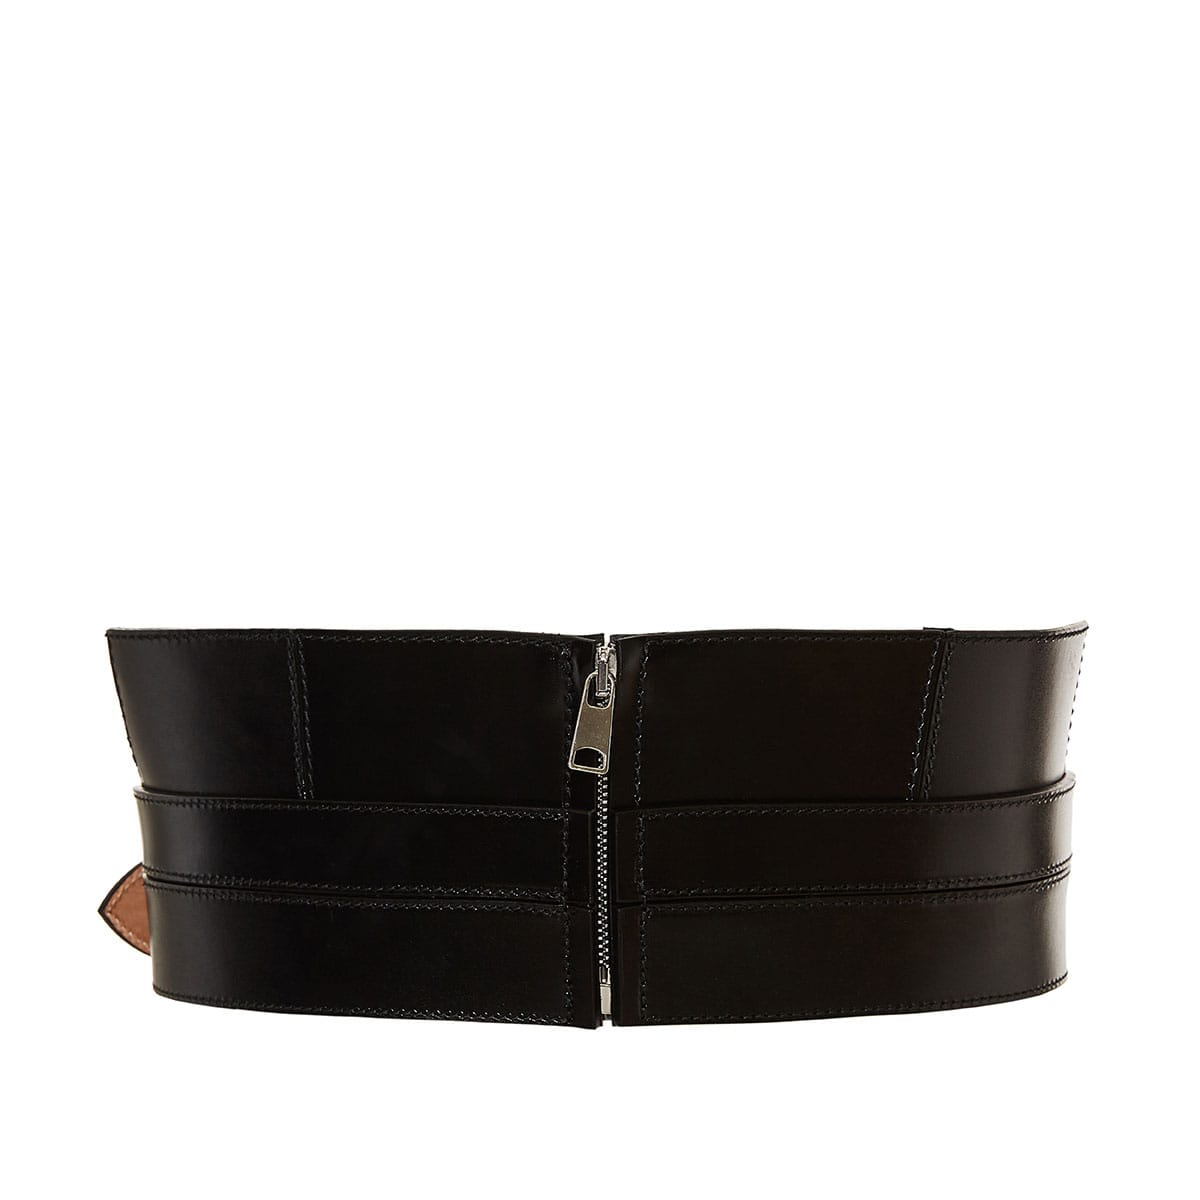 Structured wide leather belt